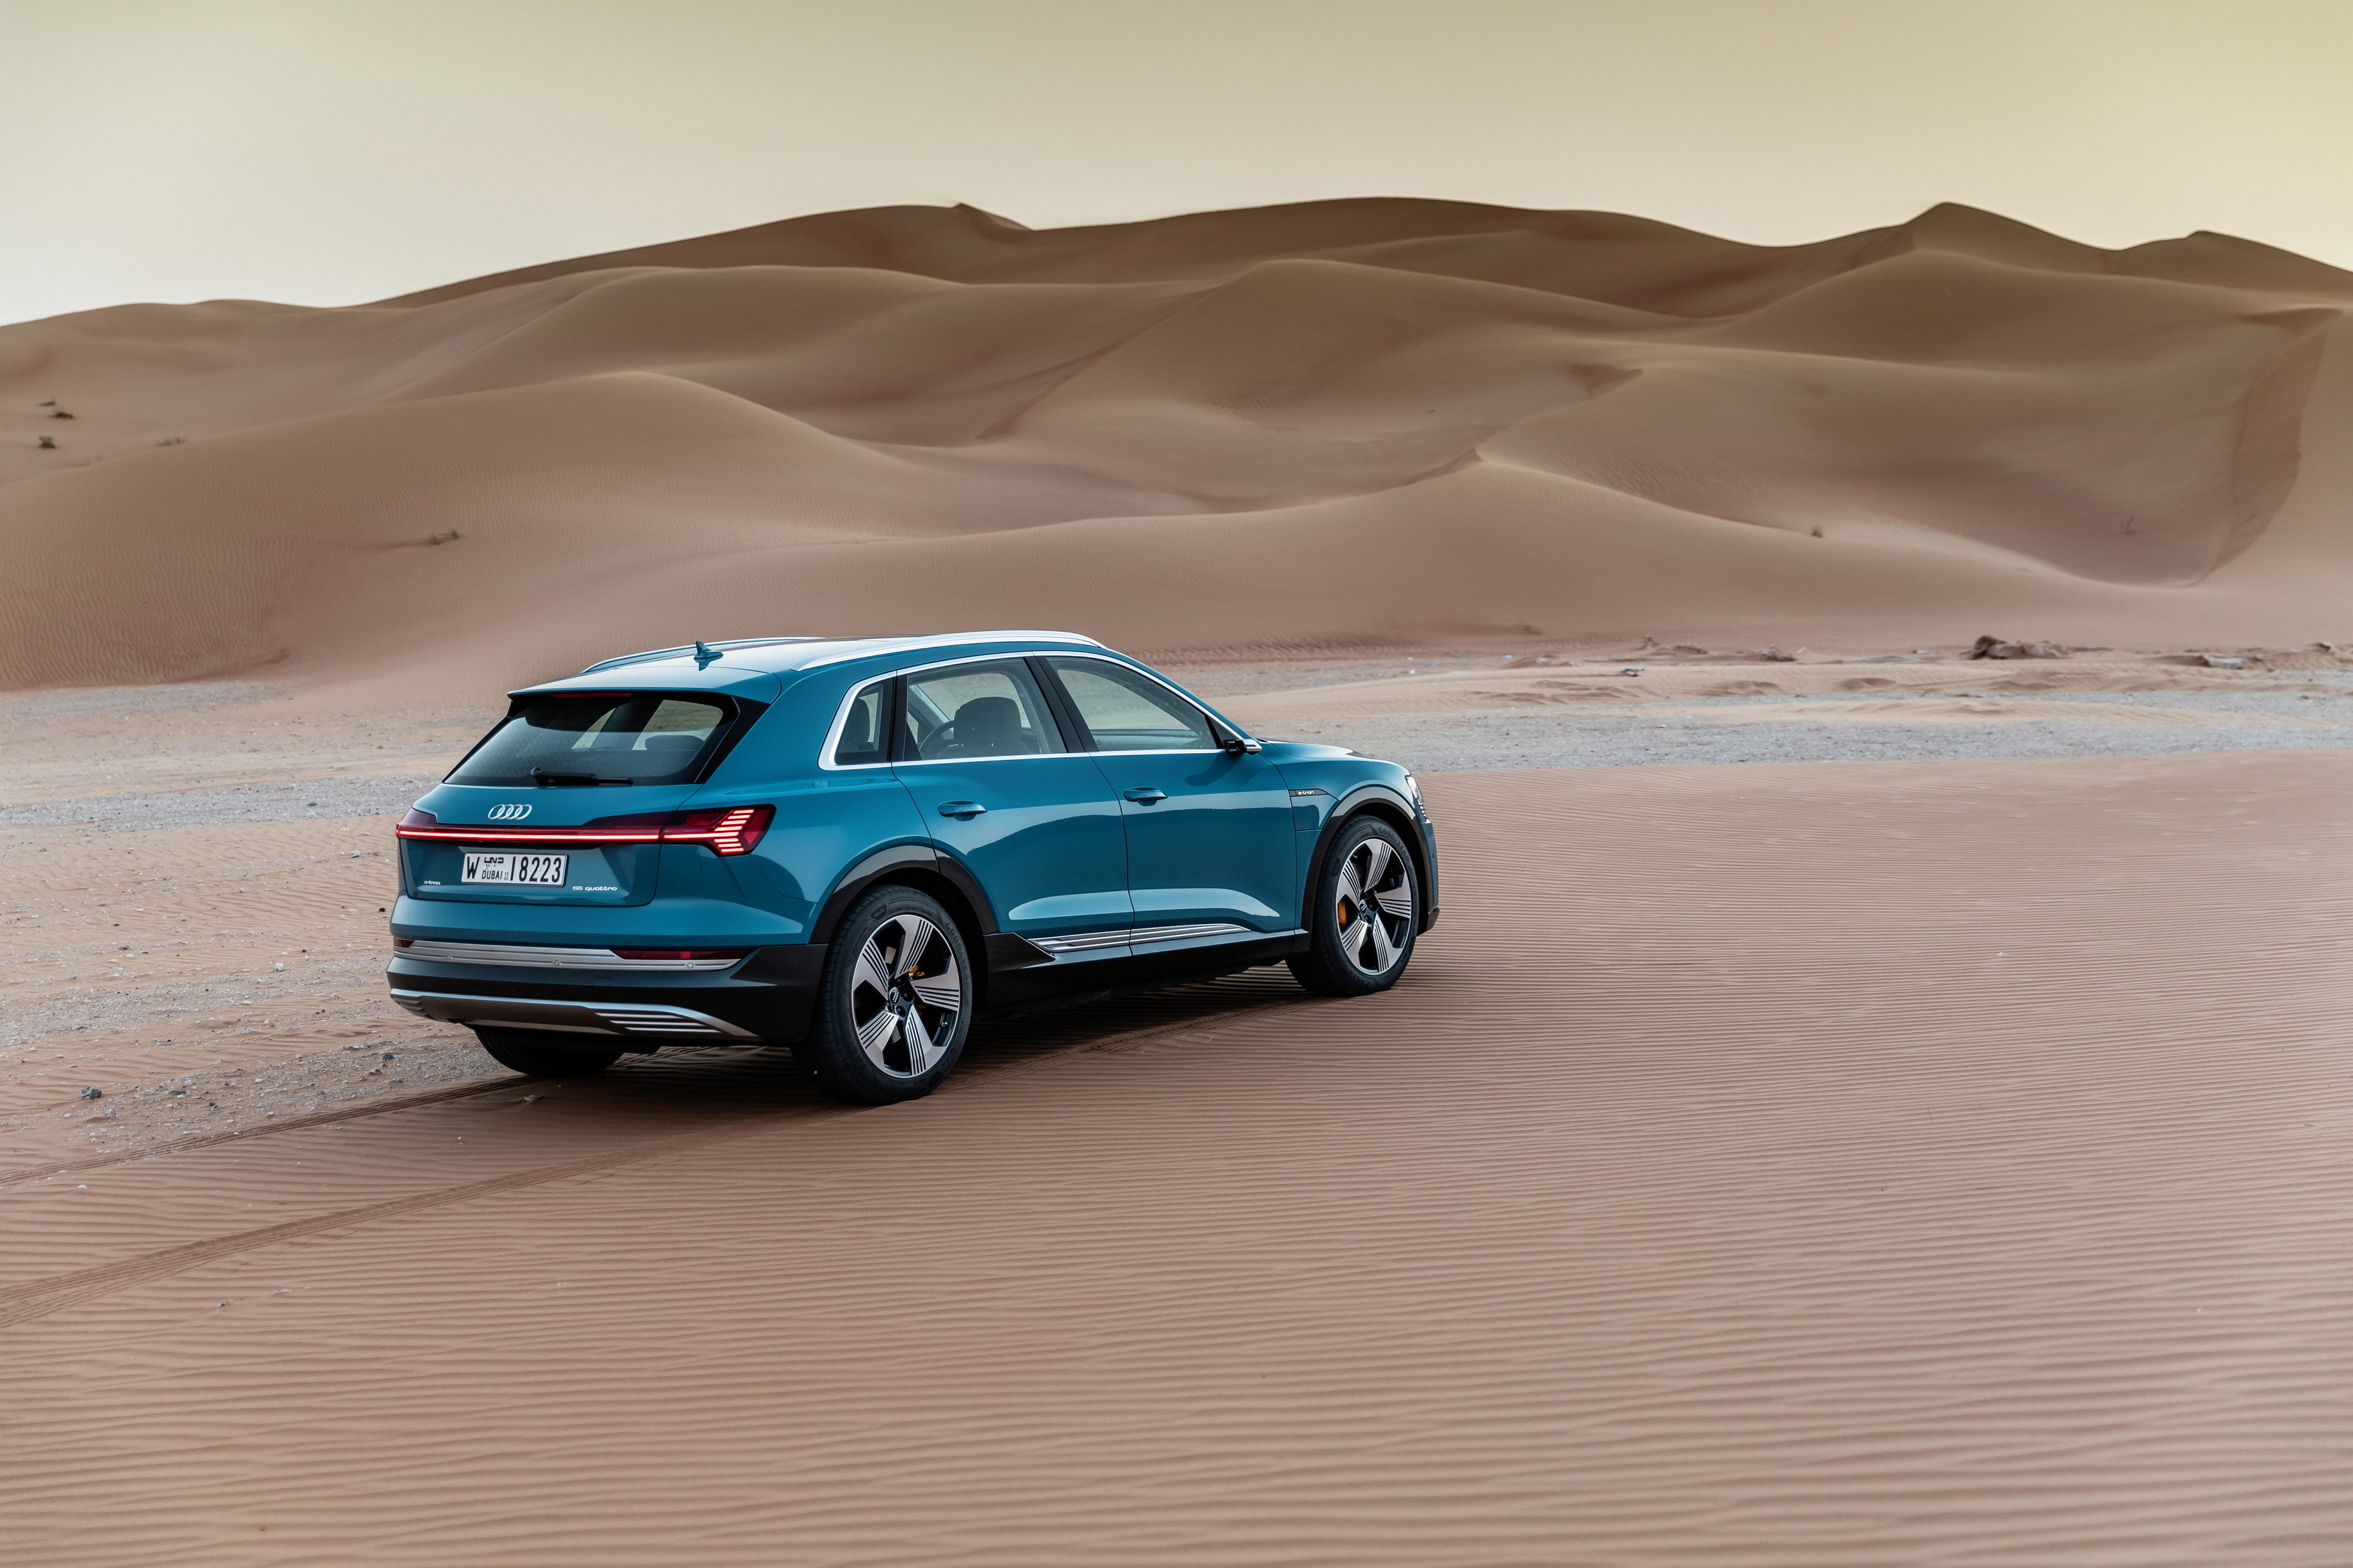 Review 2019 Audi e-tron All-electric Luxury SUV